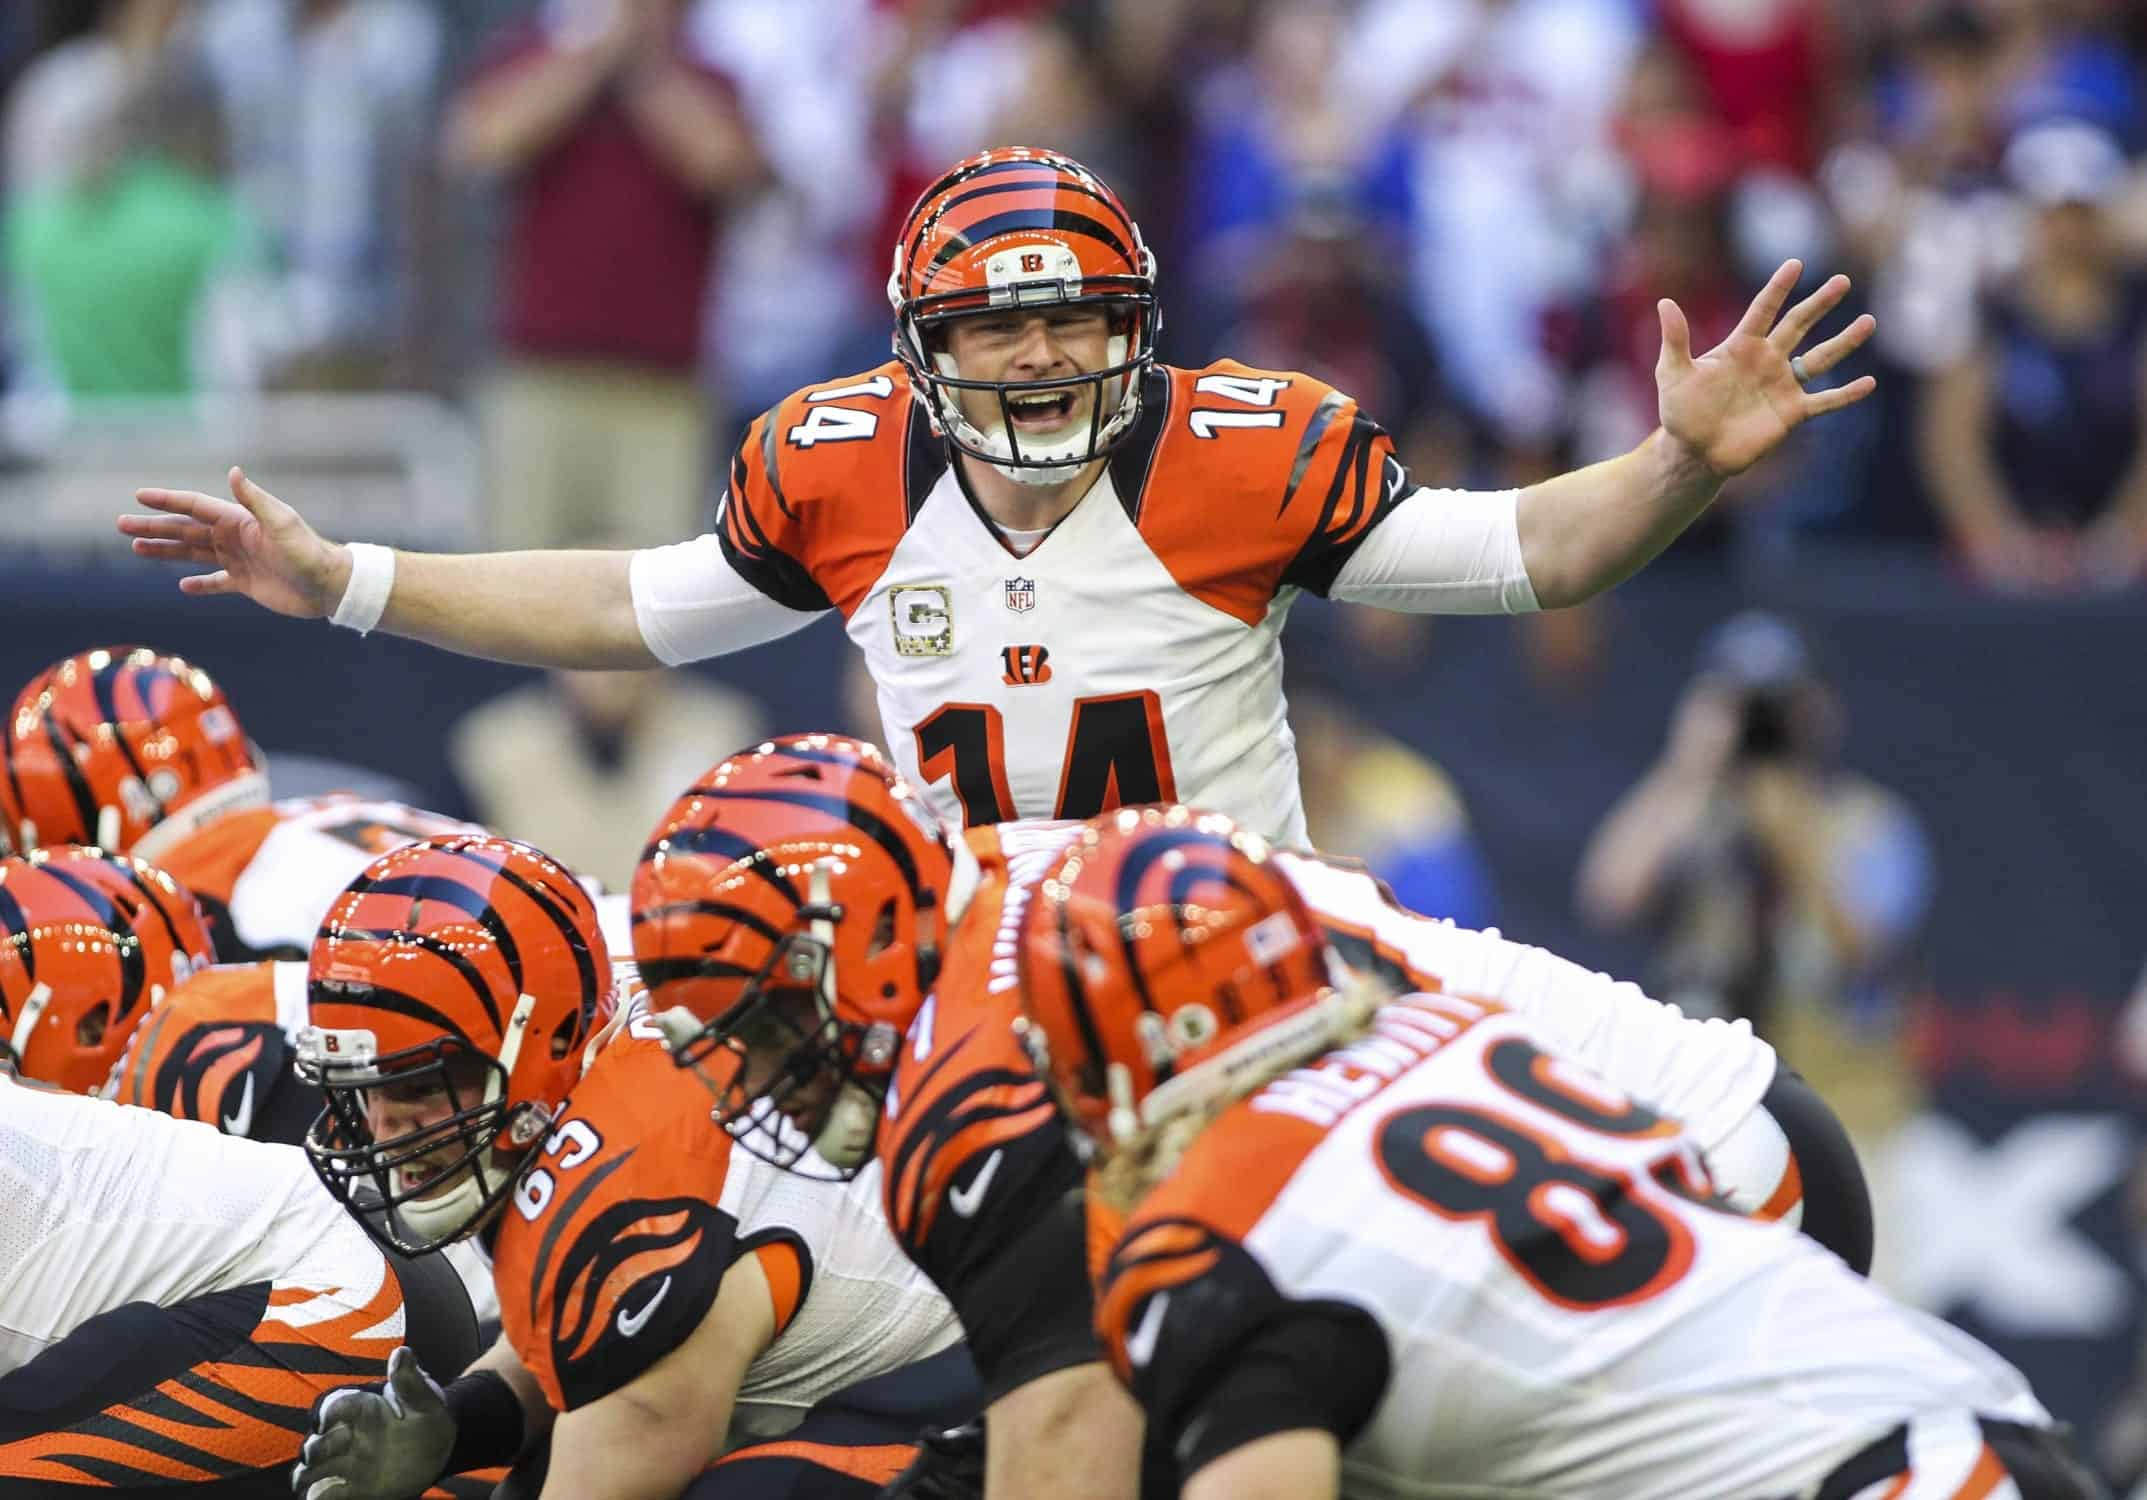 Cincinnati Bengals: With Marvin Lewis gone, this is what's next